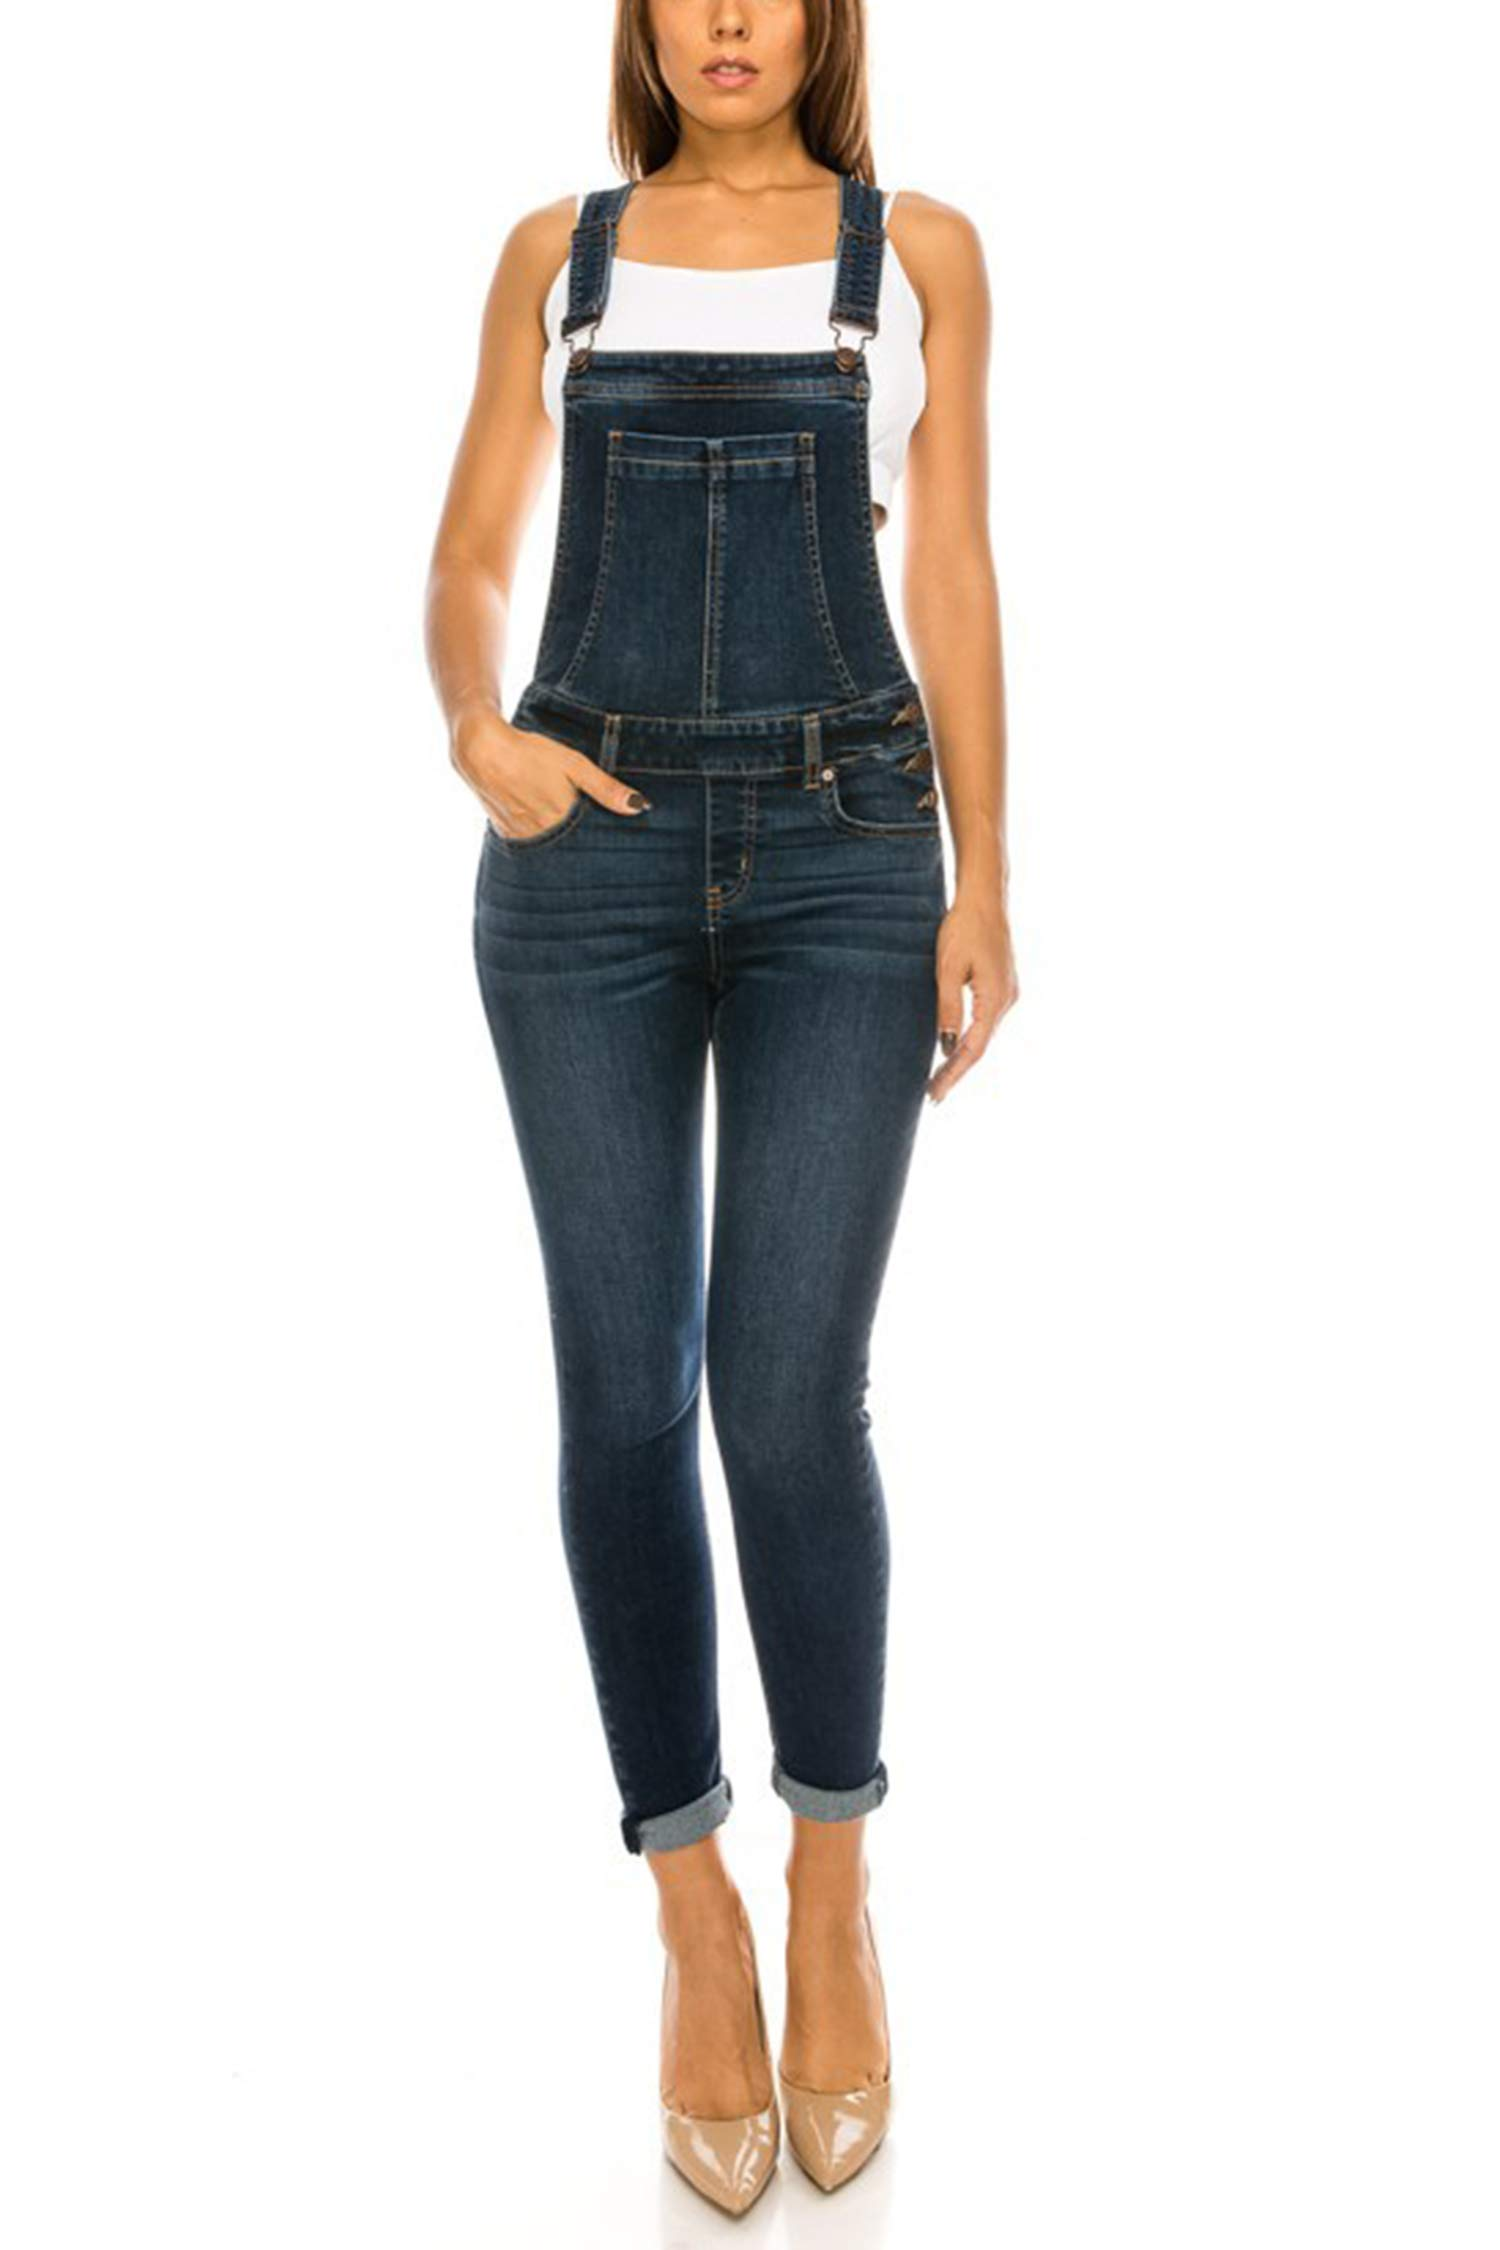 cfaf8b78041 Vialumi Women s Juniors Fitted Denim EnJean Overalls product image